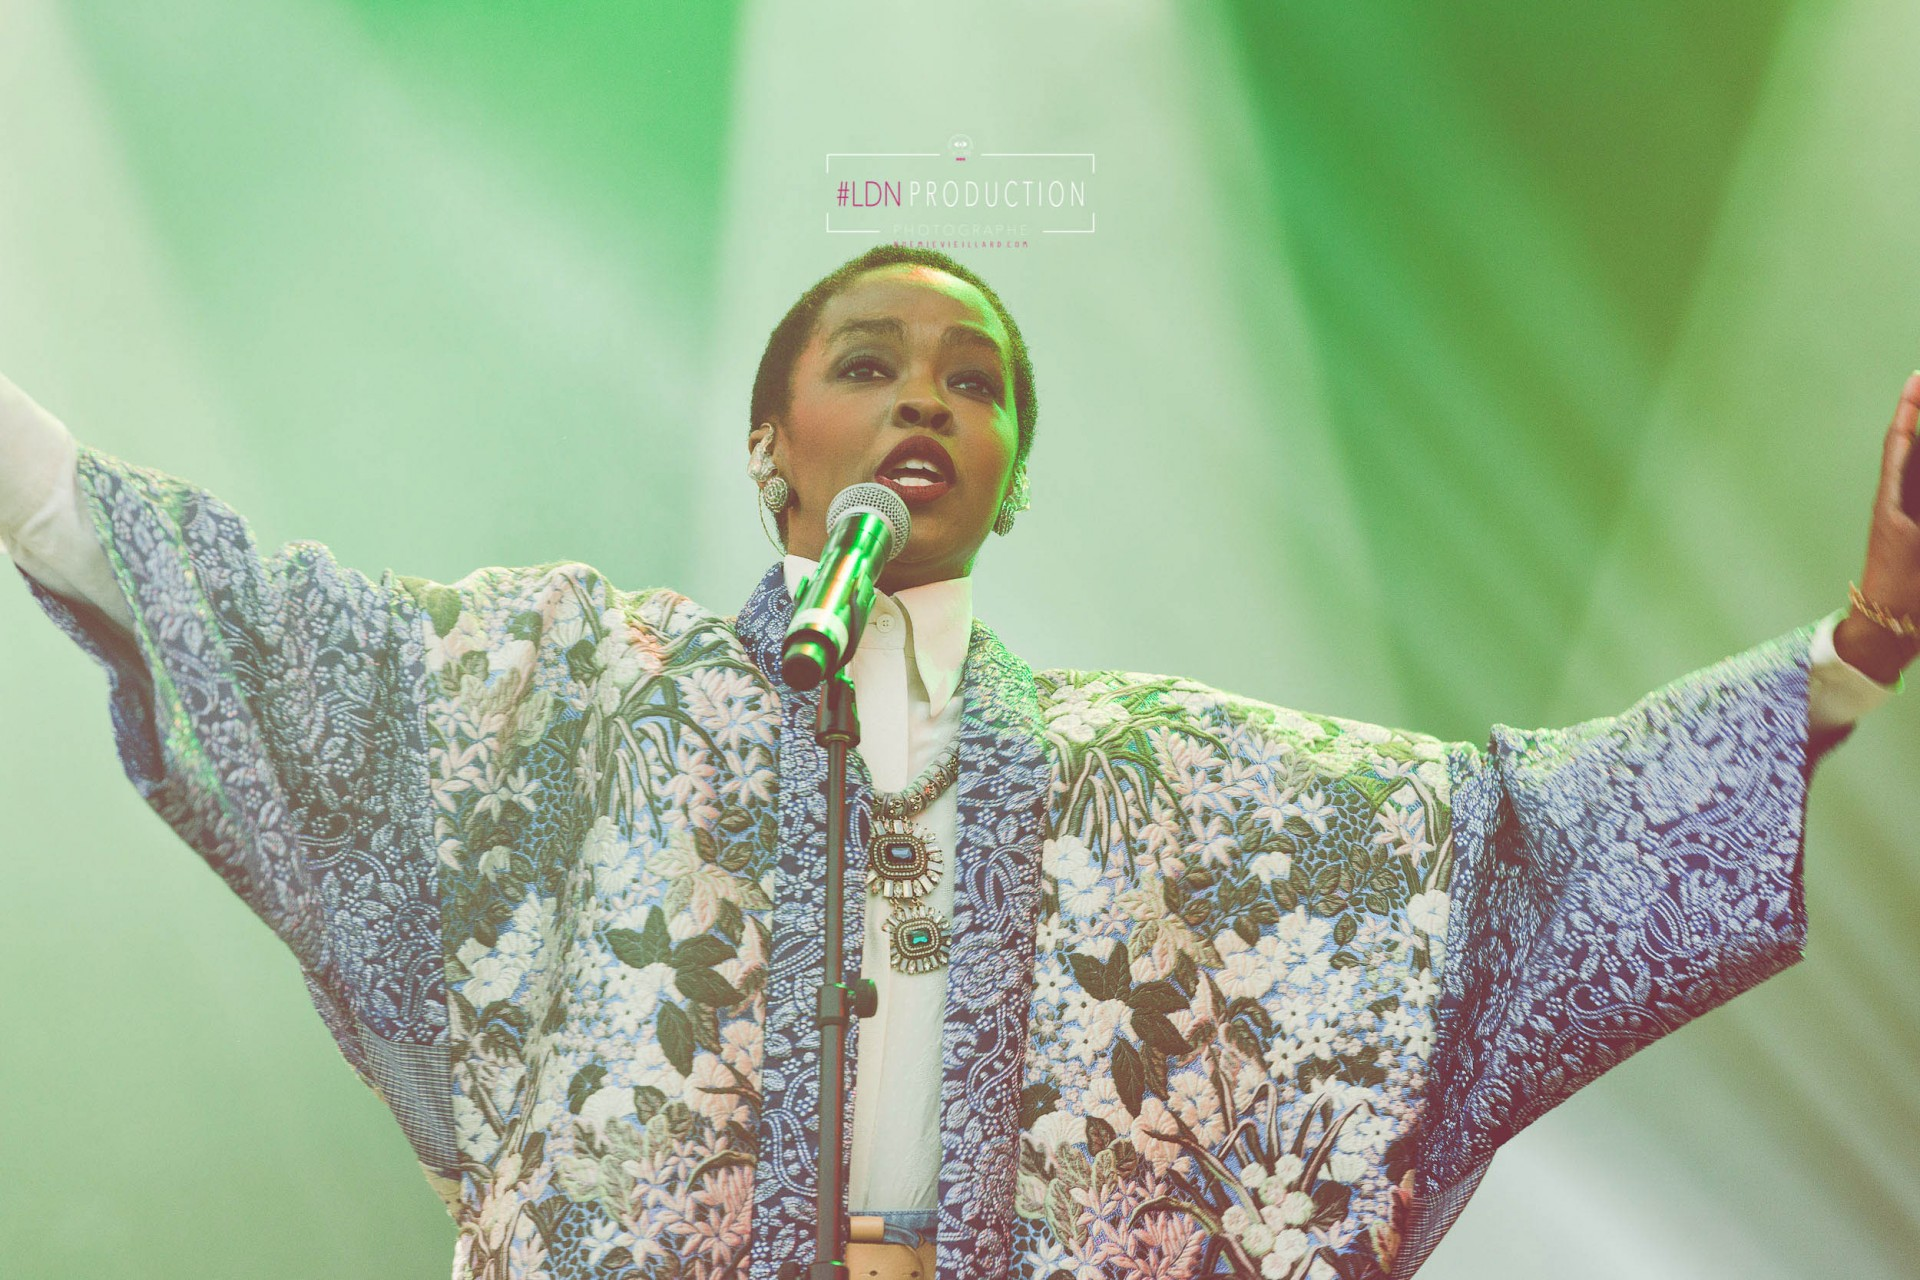 photo-ms-lauryn-hill-fugees-hip-hop-usa-soul-festival-papillons-de-nuit-normandie-noemie-vieillard-35